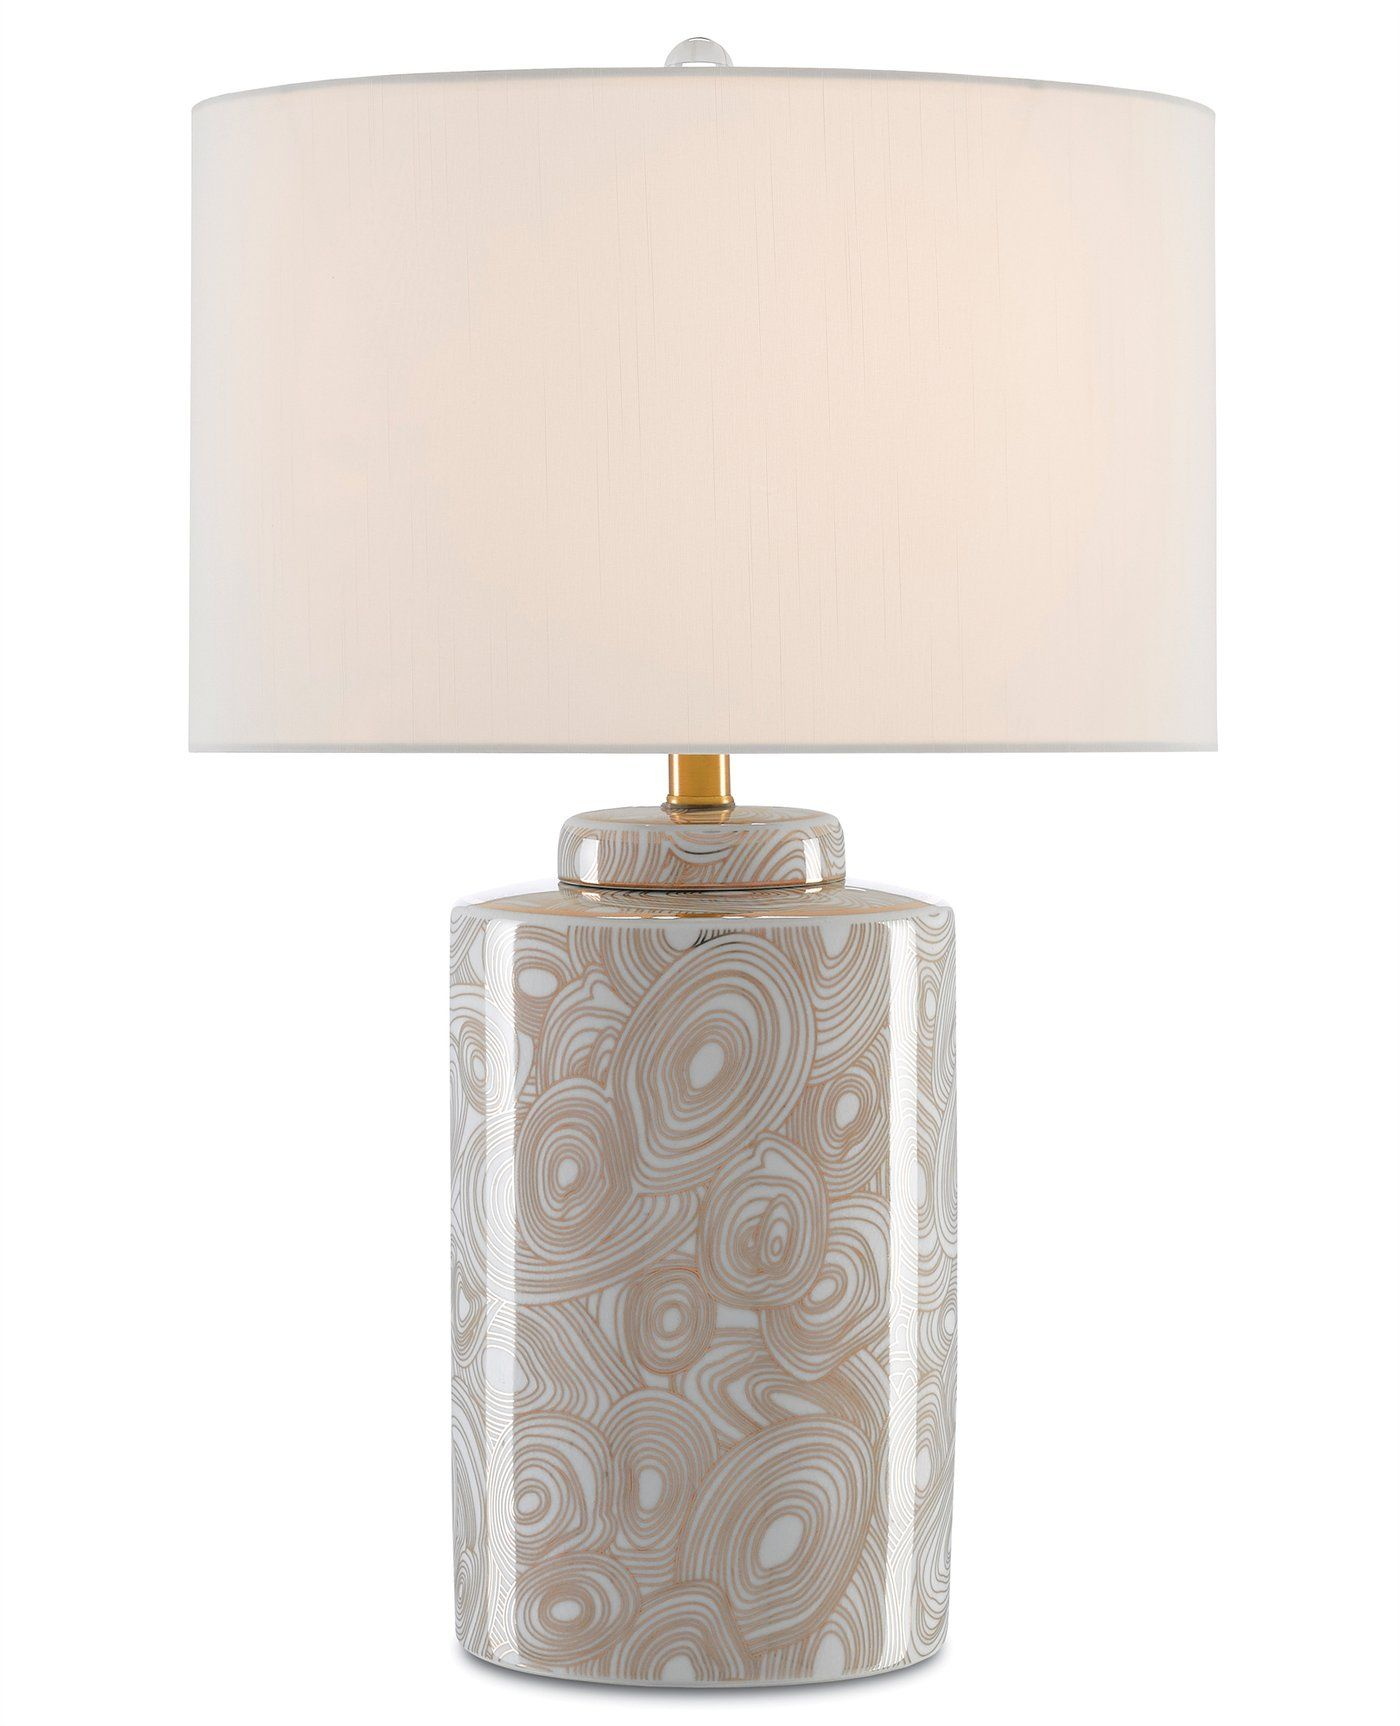 The Jules Table Lamp Showcased By Currey And Company Is Artfully Crafted Of Porcelain In The Shape Of An Antique Tea Canister And T Lamp Table Lamp Antique Tea